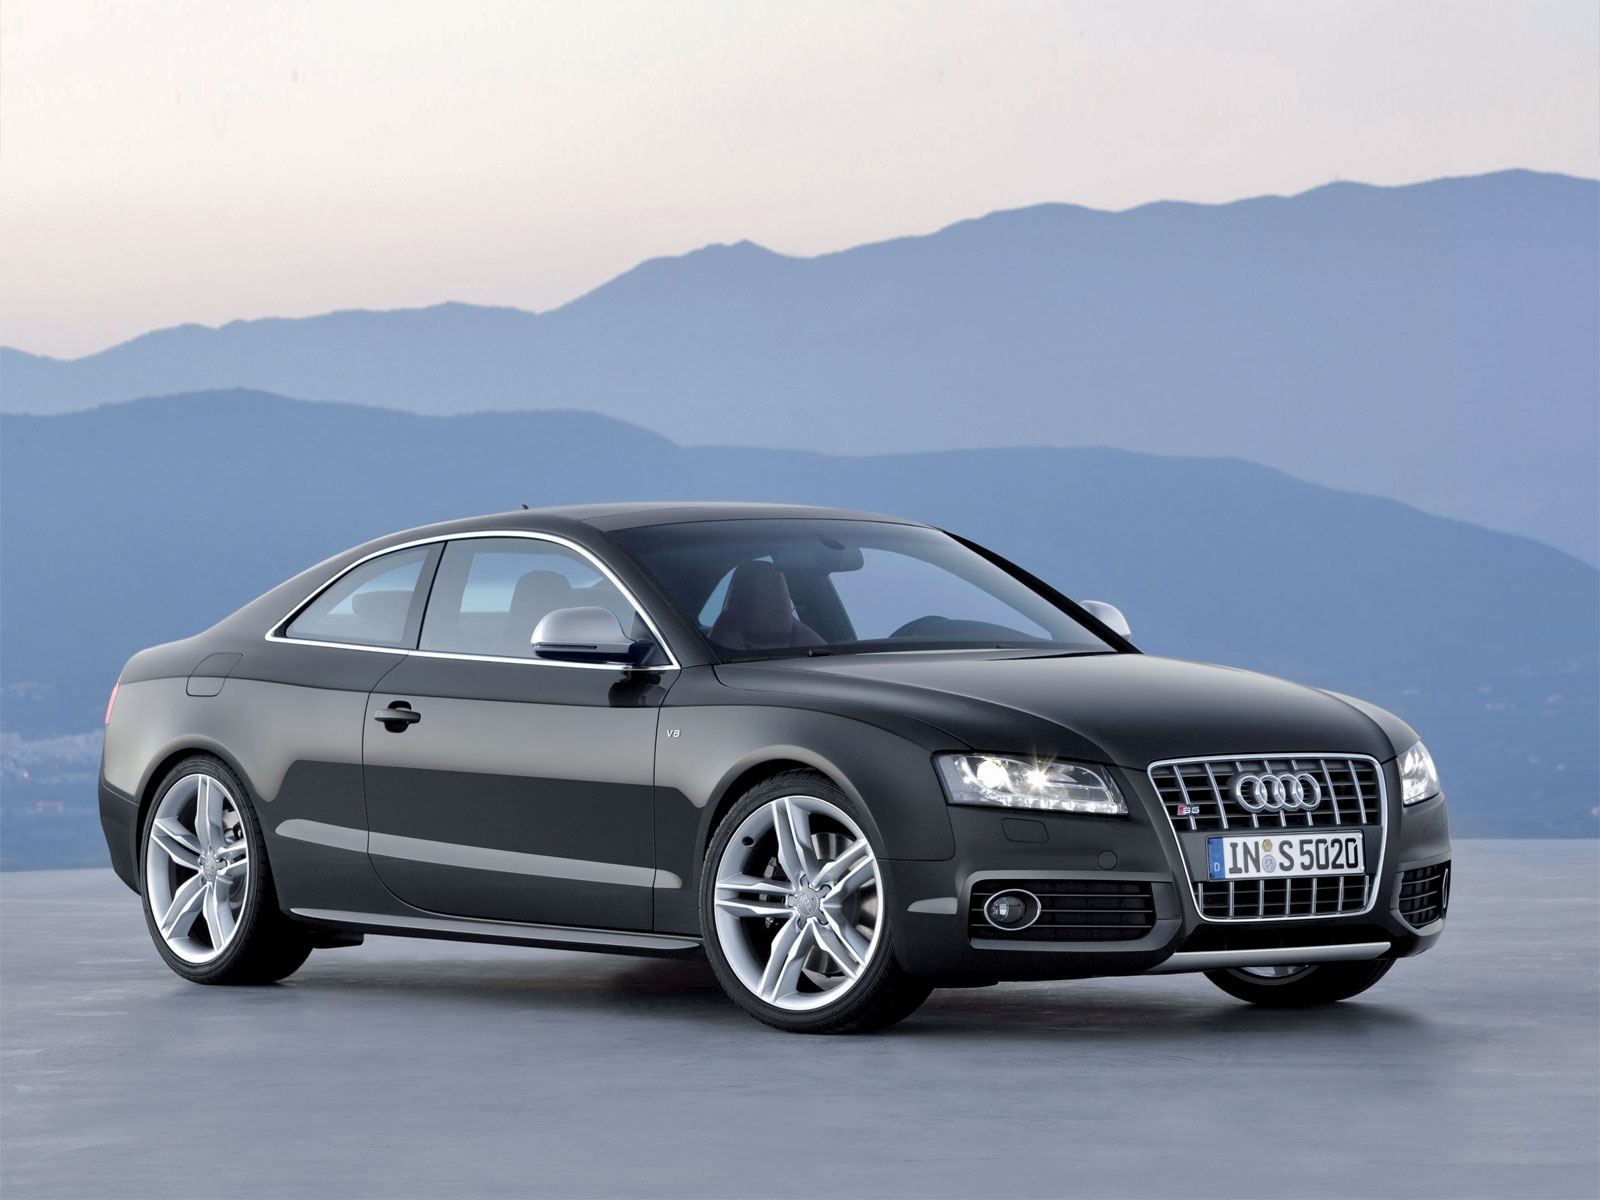 2008 audi s5 pictures cargurus. Black Bedroom Furniture Sets. Home Design Ideas